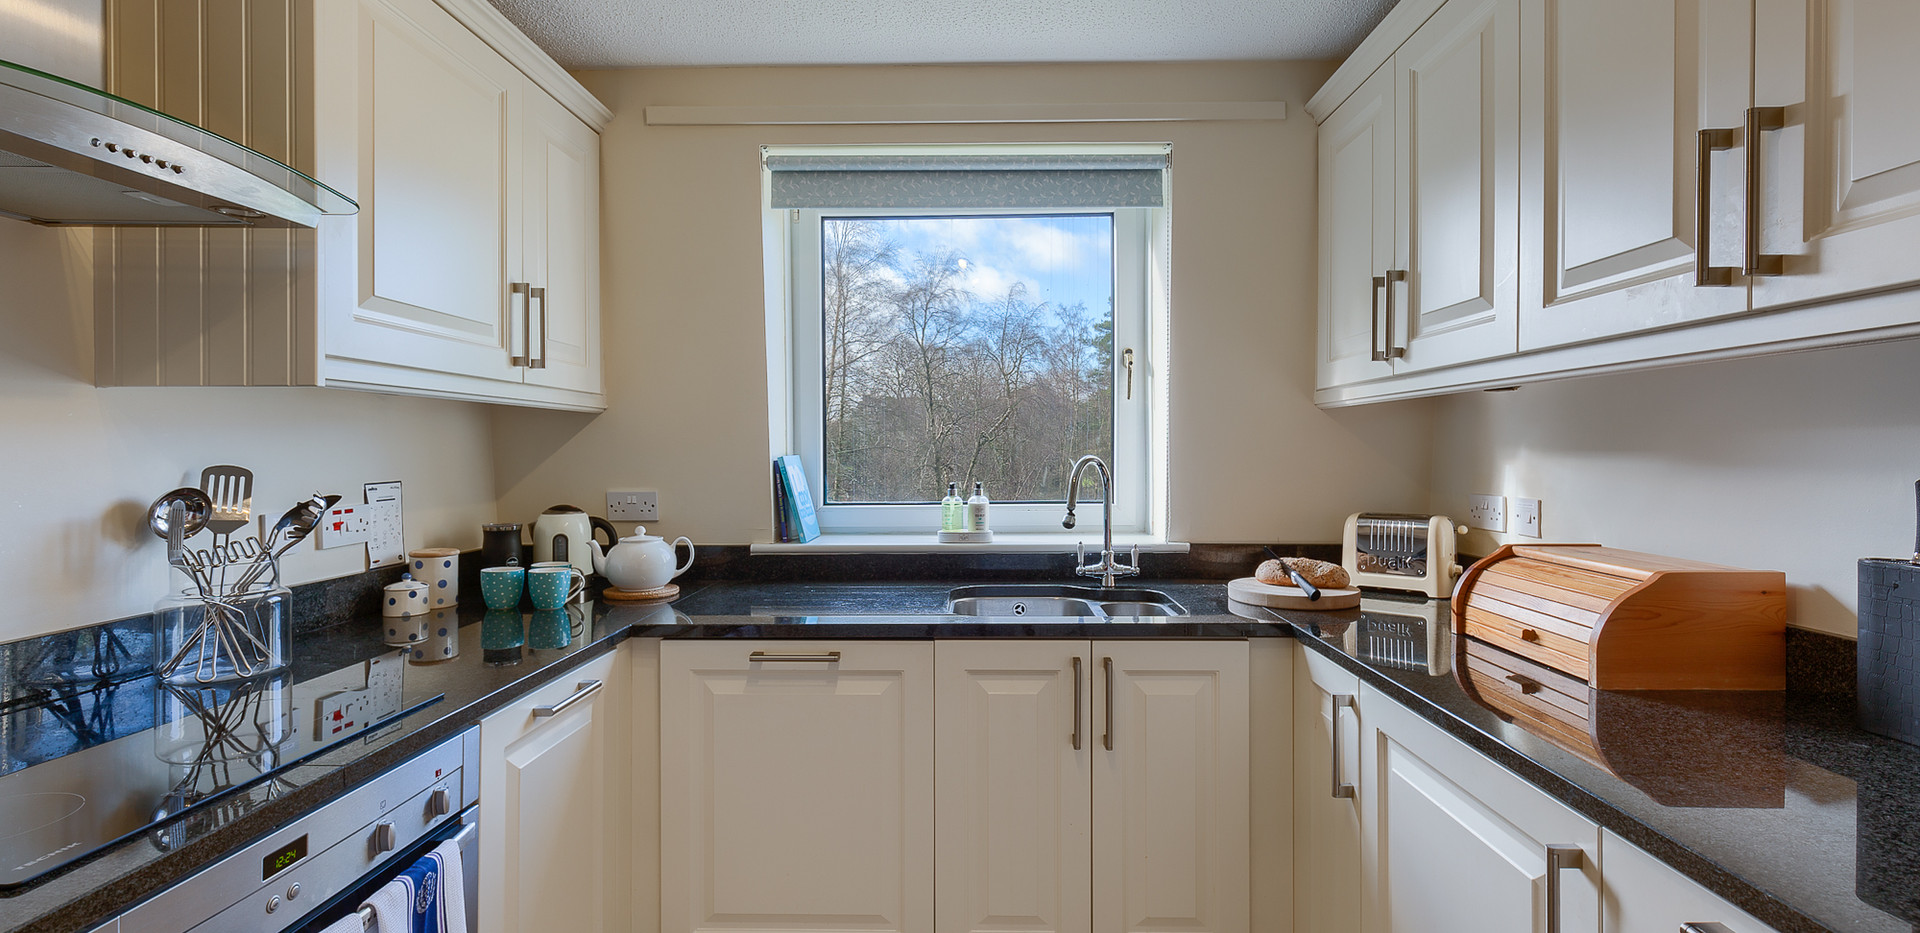 Guthrie Court fully equipped kitchen